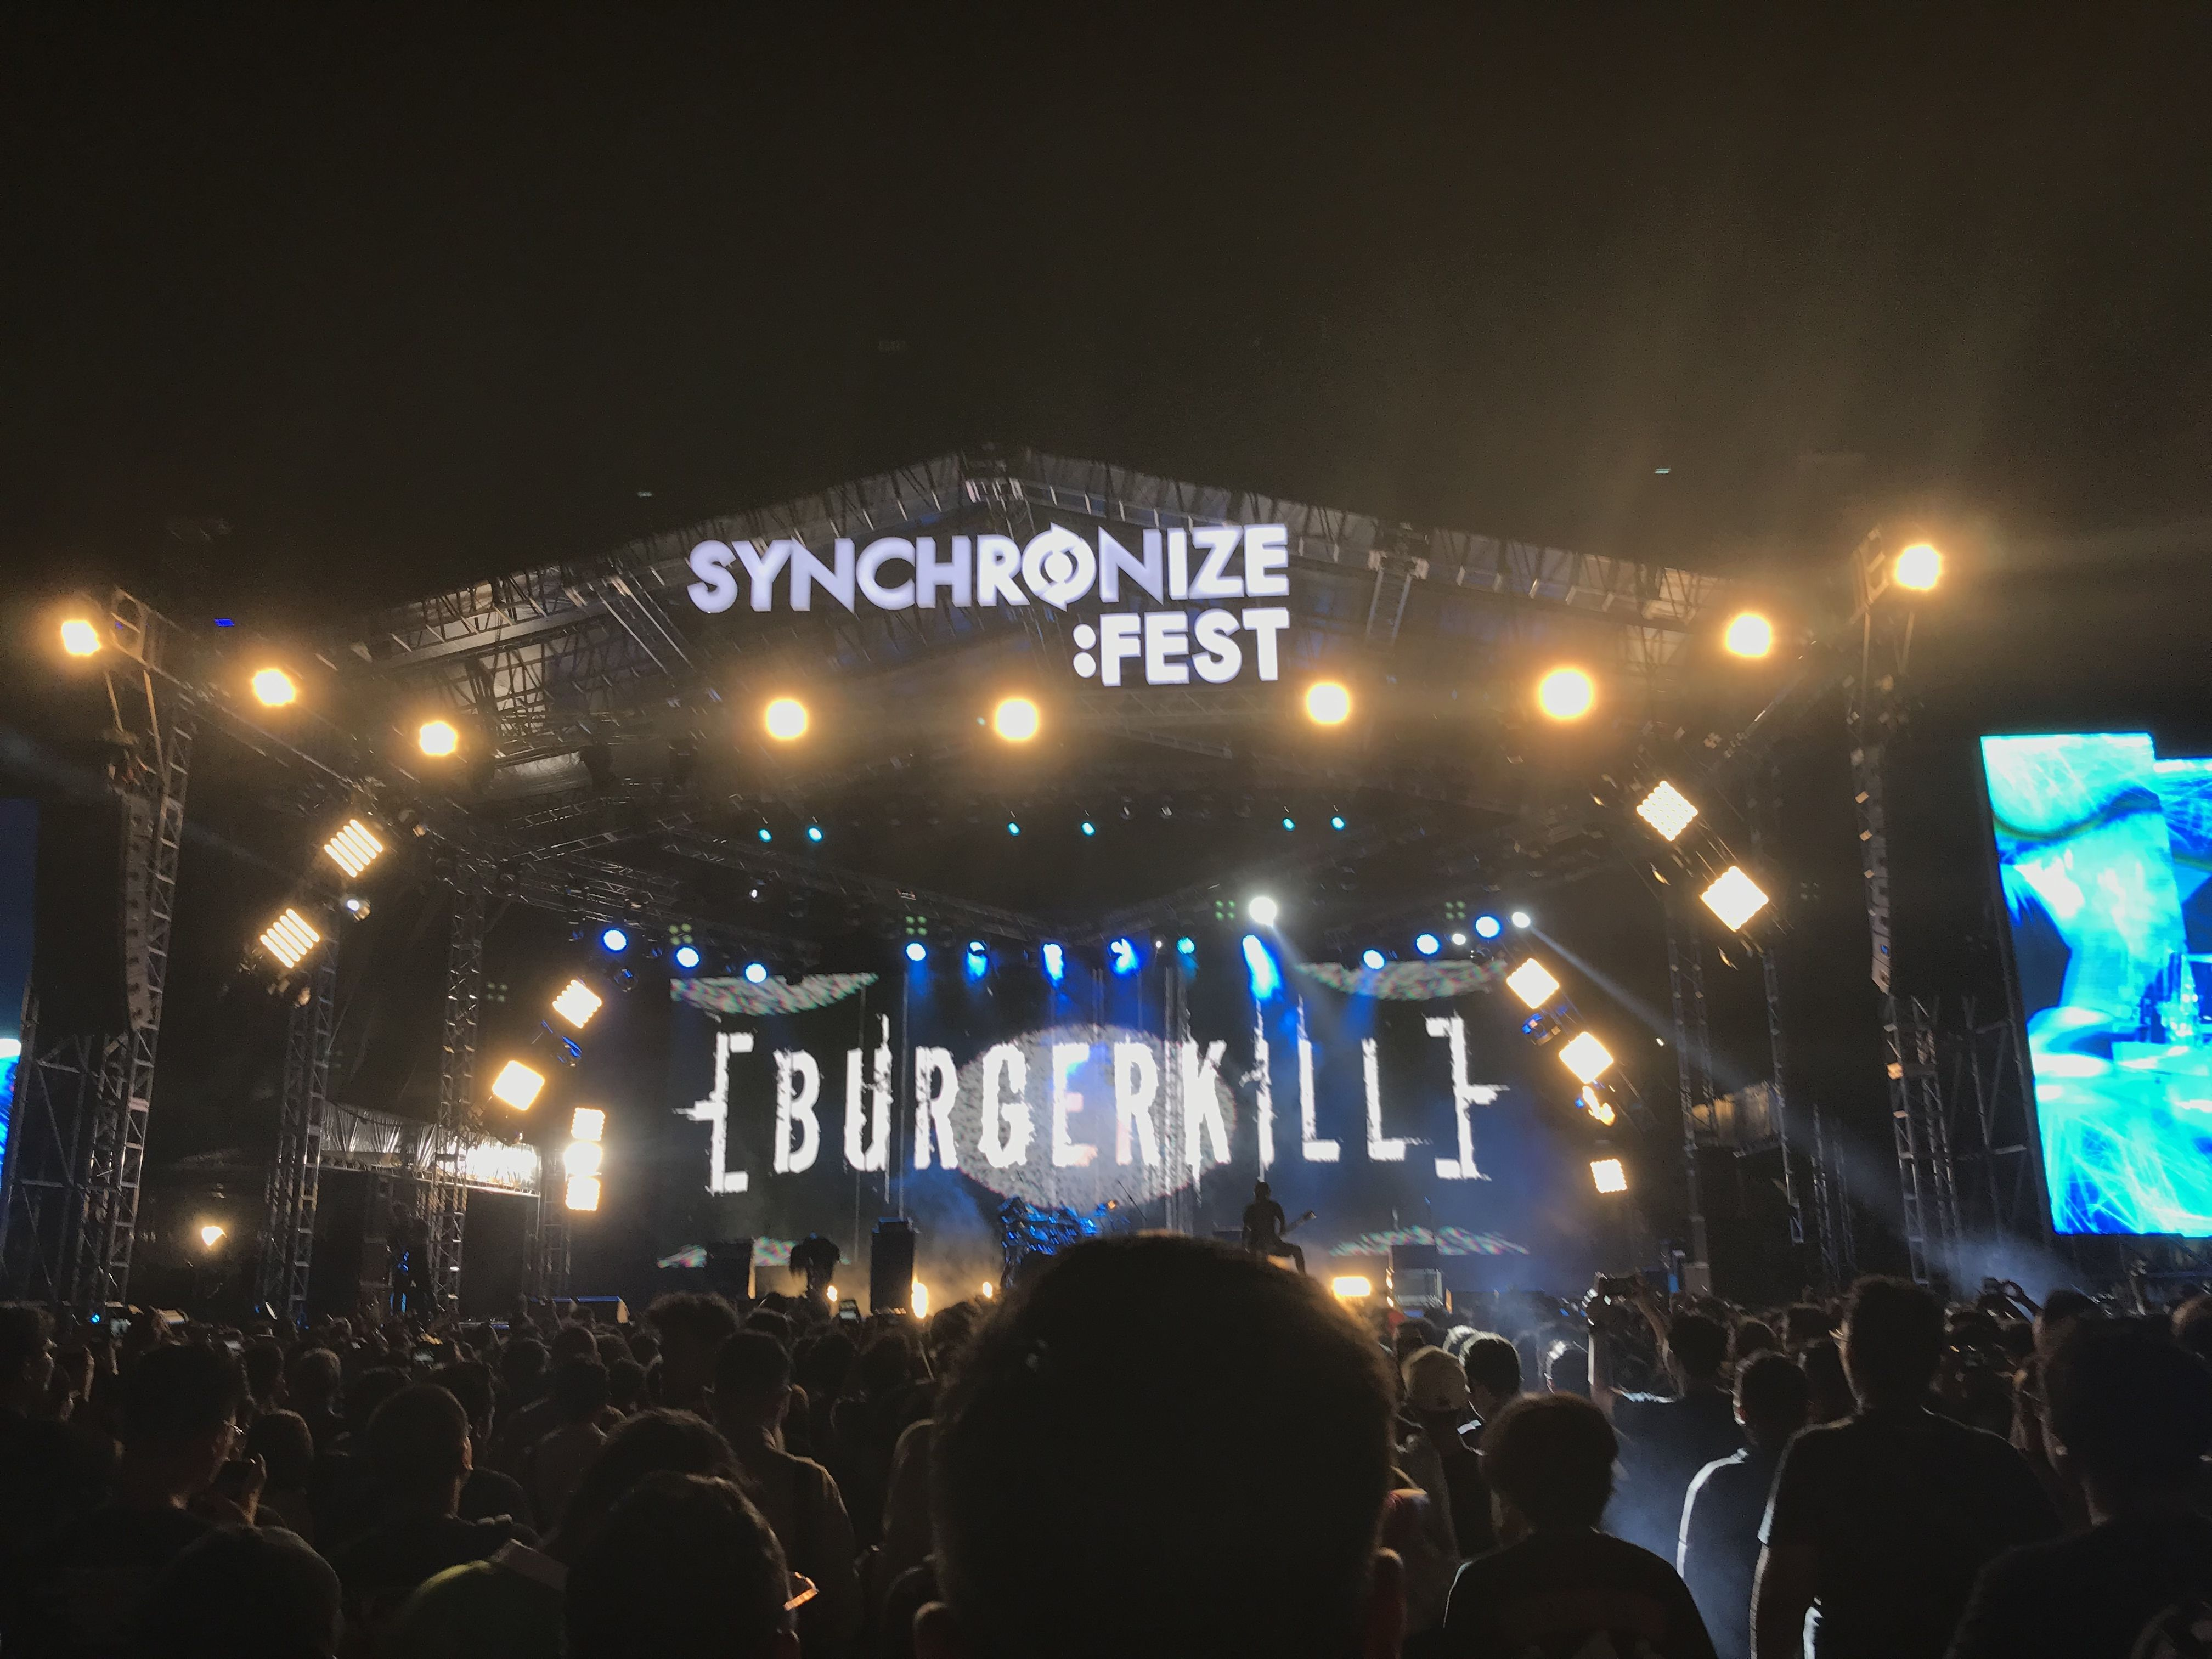 Pin Oleh Octwjy Di Synchronize Fest